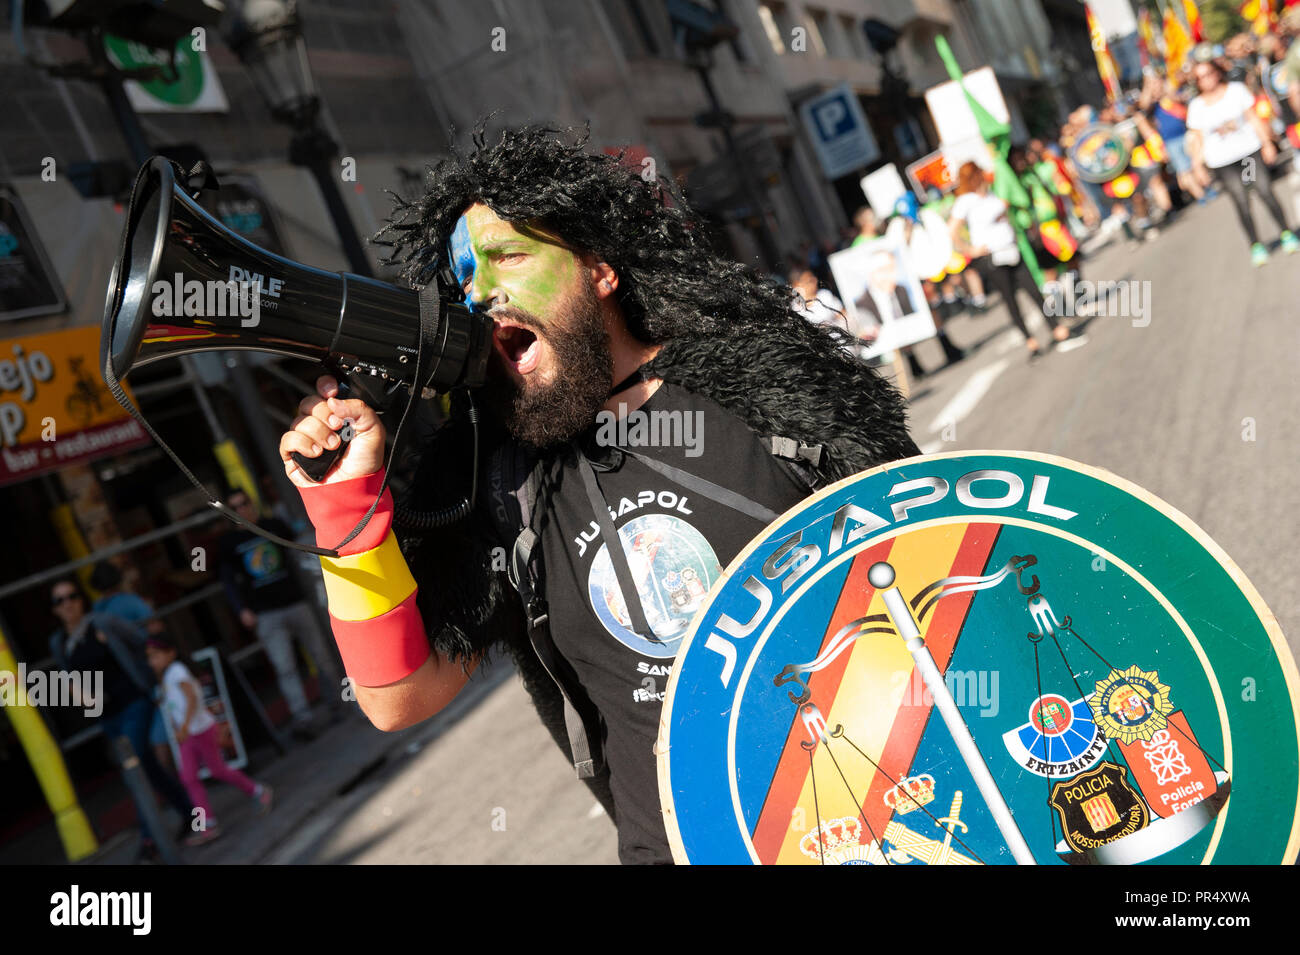 Barcelona. 29th September, 2018.  Catalonia's pro-independence supporters clash with Mossos d'Esquadra police officers as they protest against a demonstration to commemorate their operation to prevent the 2017 Catalonia Independence Referendum. Credit: Charlie Pérez / Alamy Live News Stock Photo